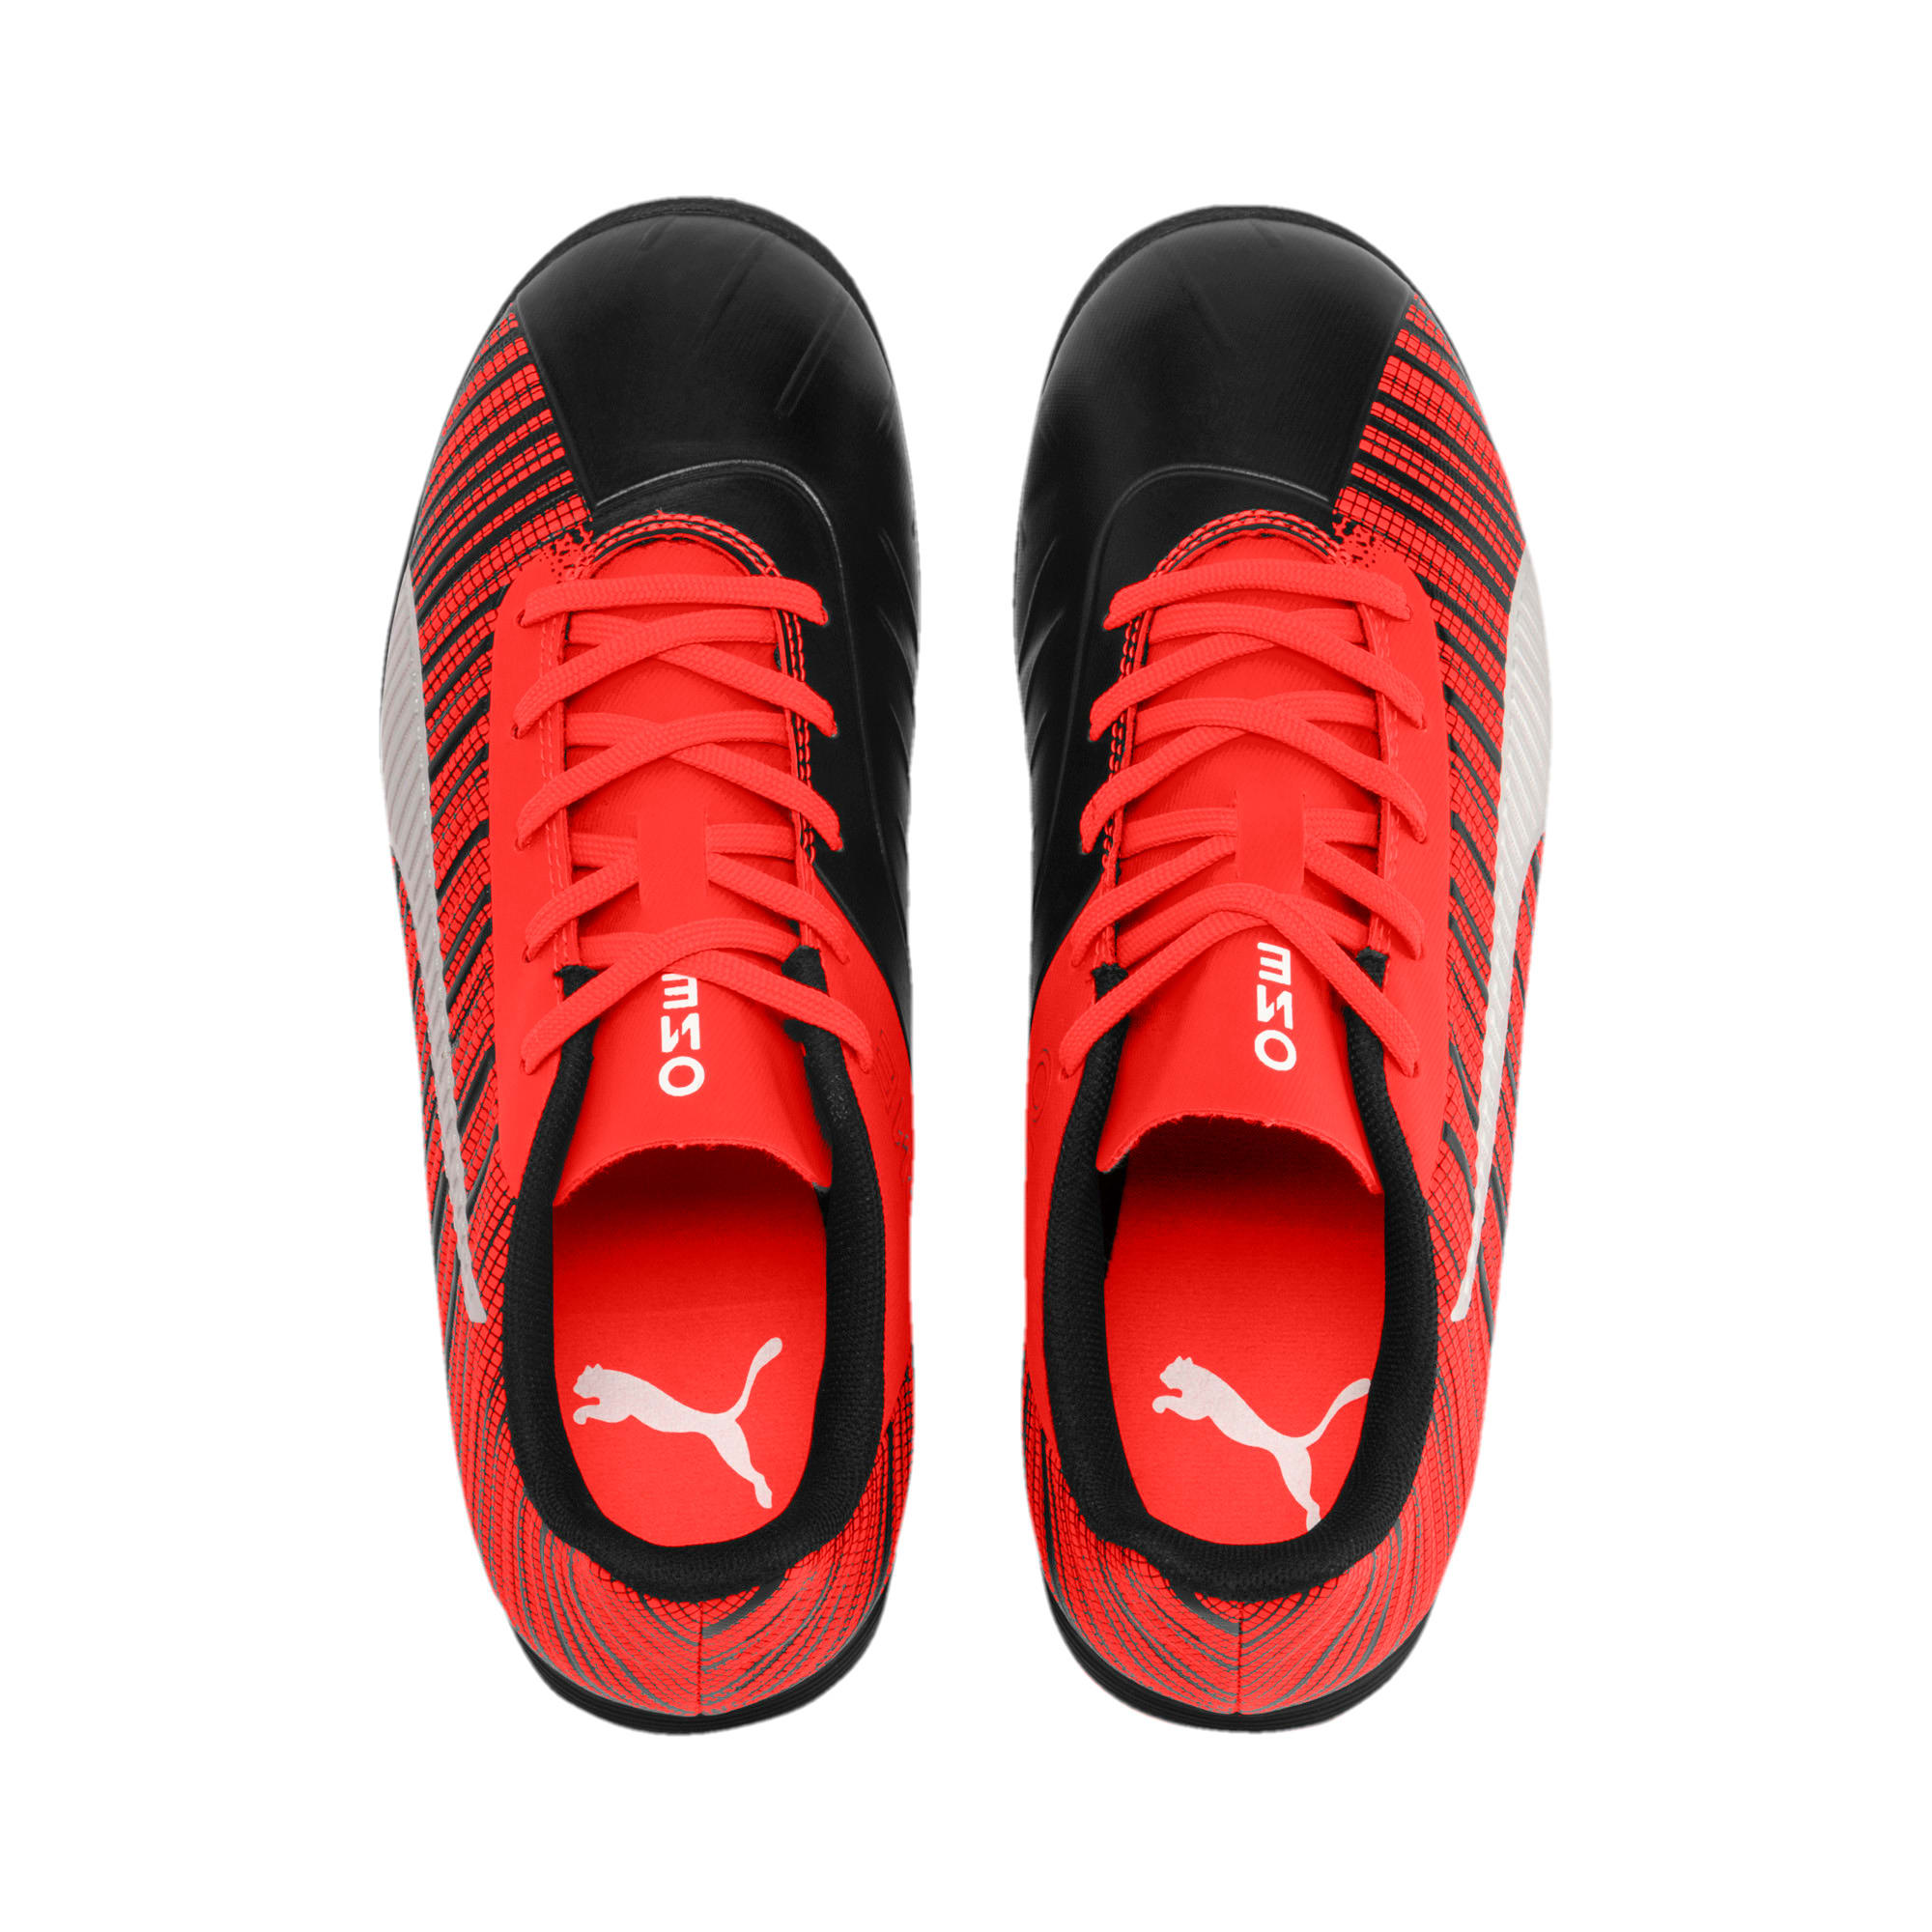 Thumbnail 6 of PUMA ONE 5.4 TT Soccer Shoes JR, Black-Nrgy Red-Aged Silver, medium